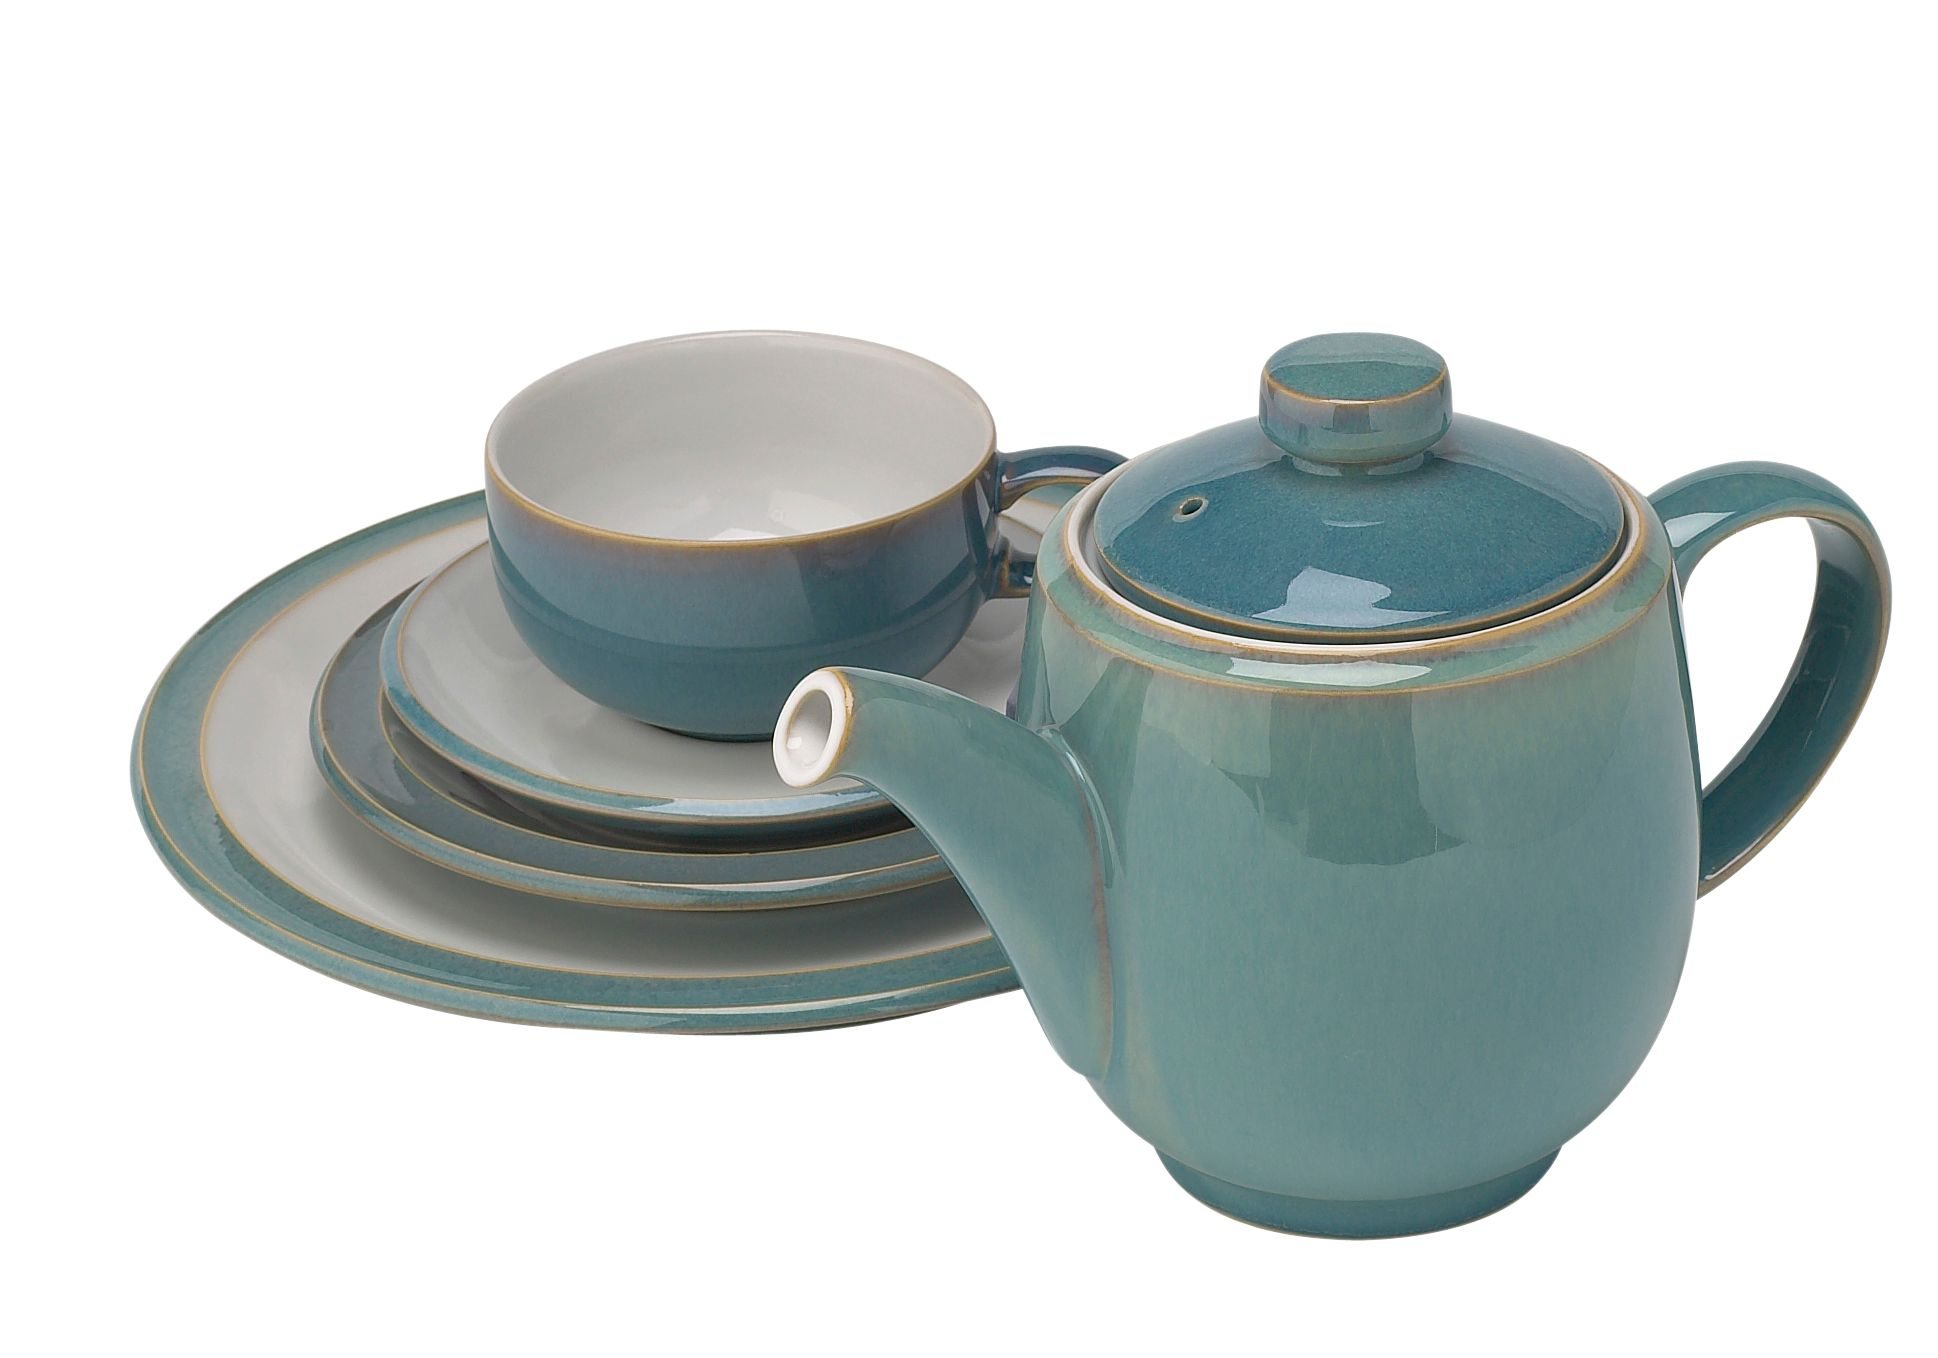 Azure stoneware dinnerware in Light Blue